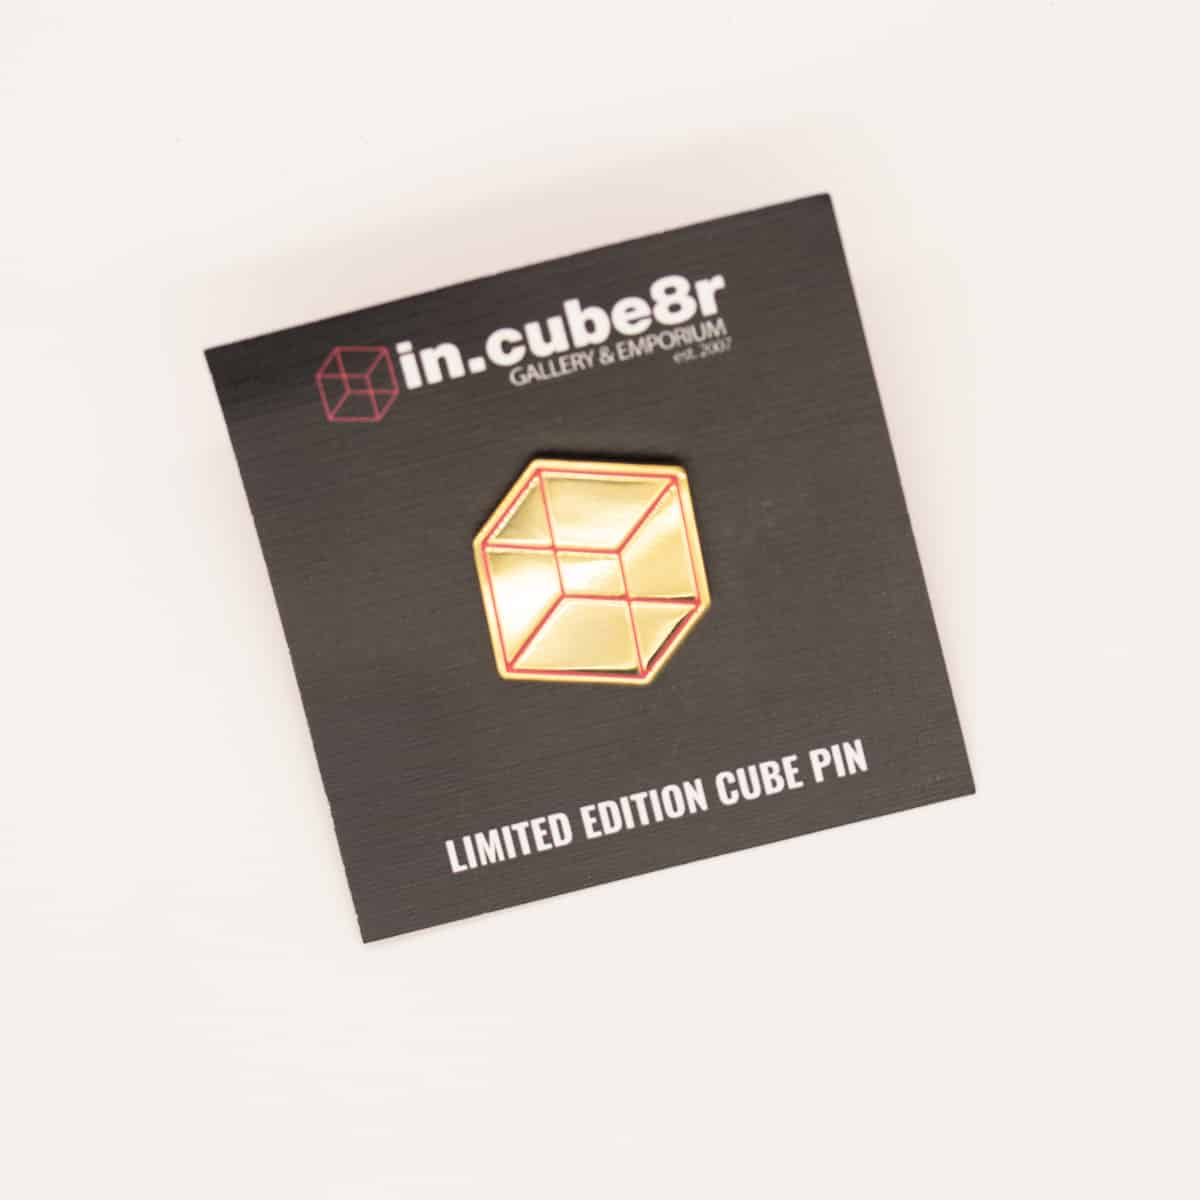 IN.CUBE8R Promotional Cube Enamel Pin